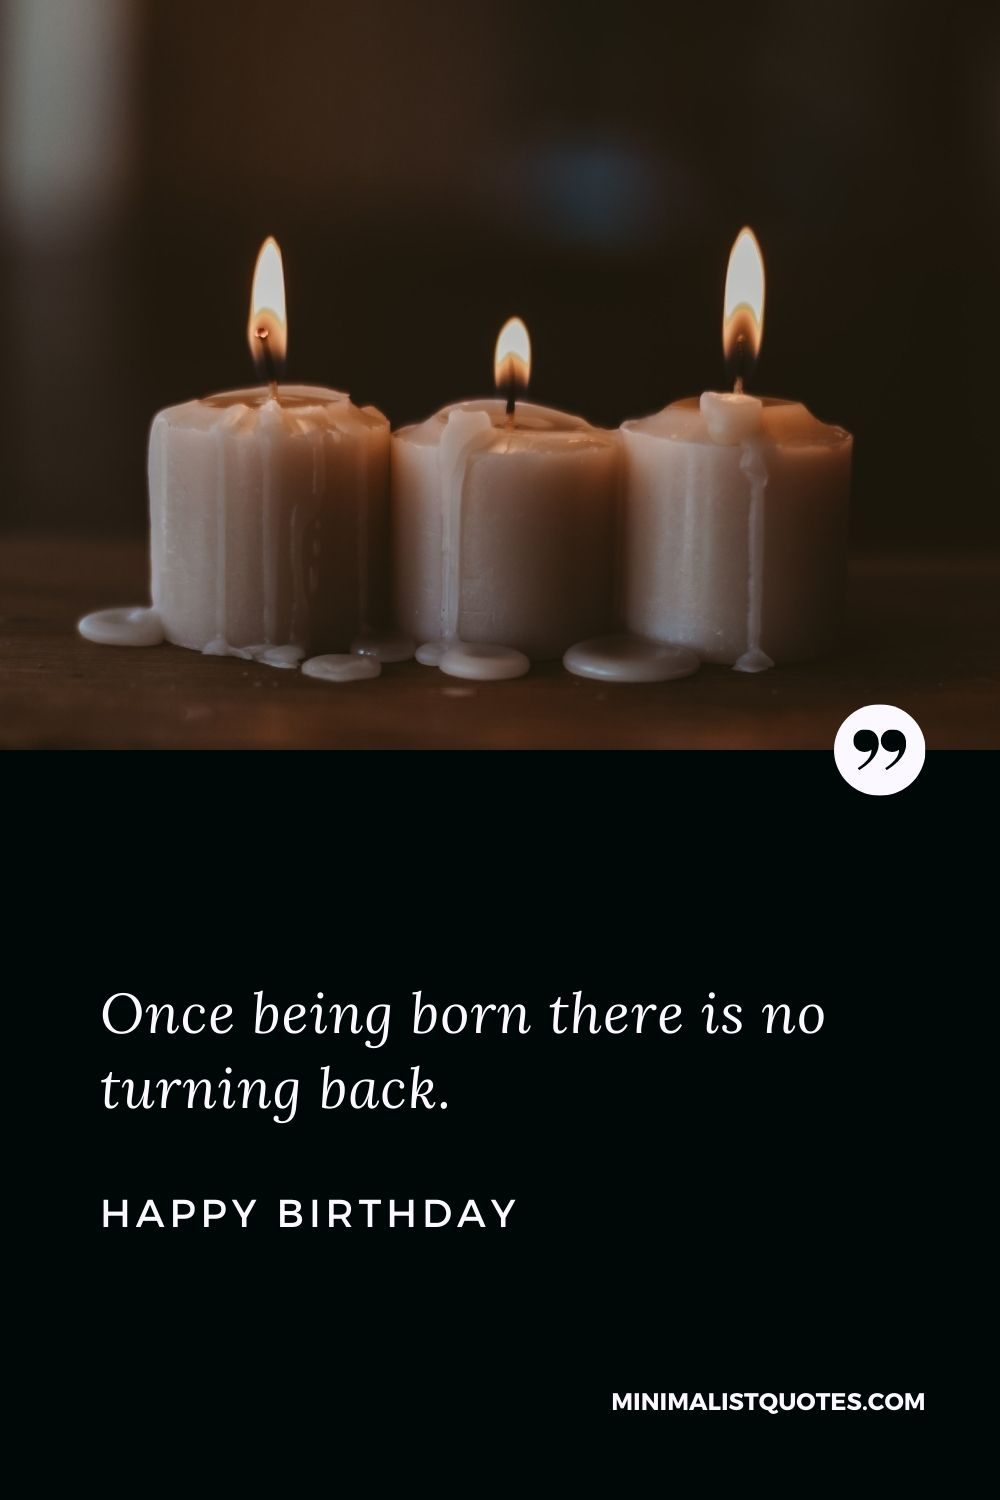 Birthday Wish & Message with HD Image: Once being born there is no turning back. Happy Birthday!